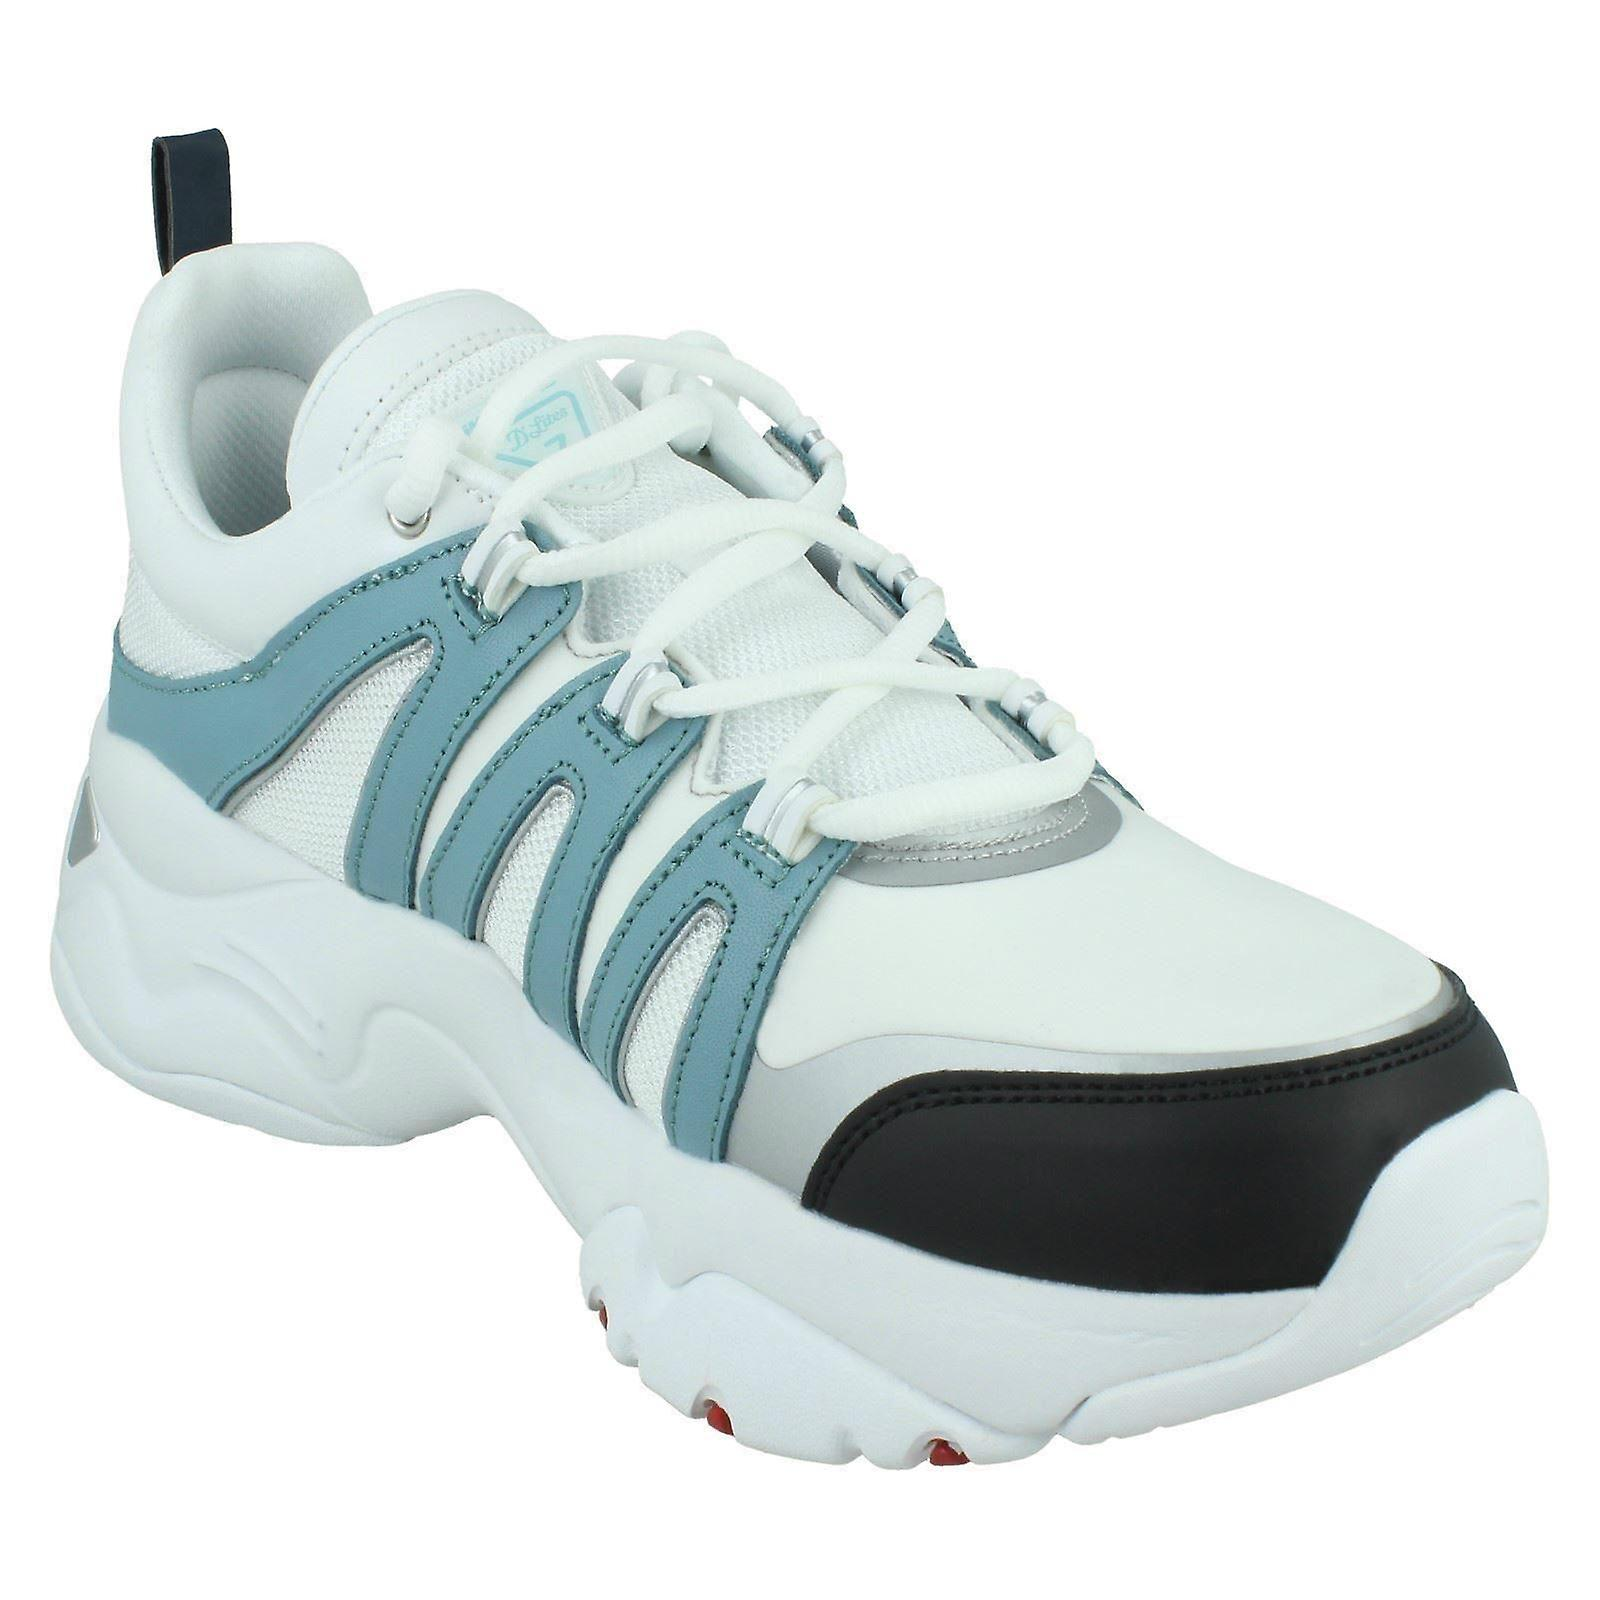 Ladies Skechers Casual Lace Up Trainers D'lites 3.0 Trendy Feels 12957